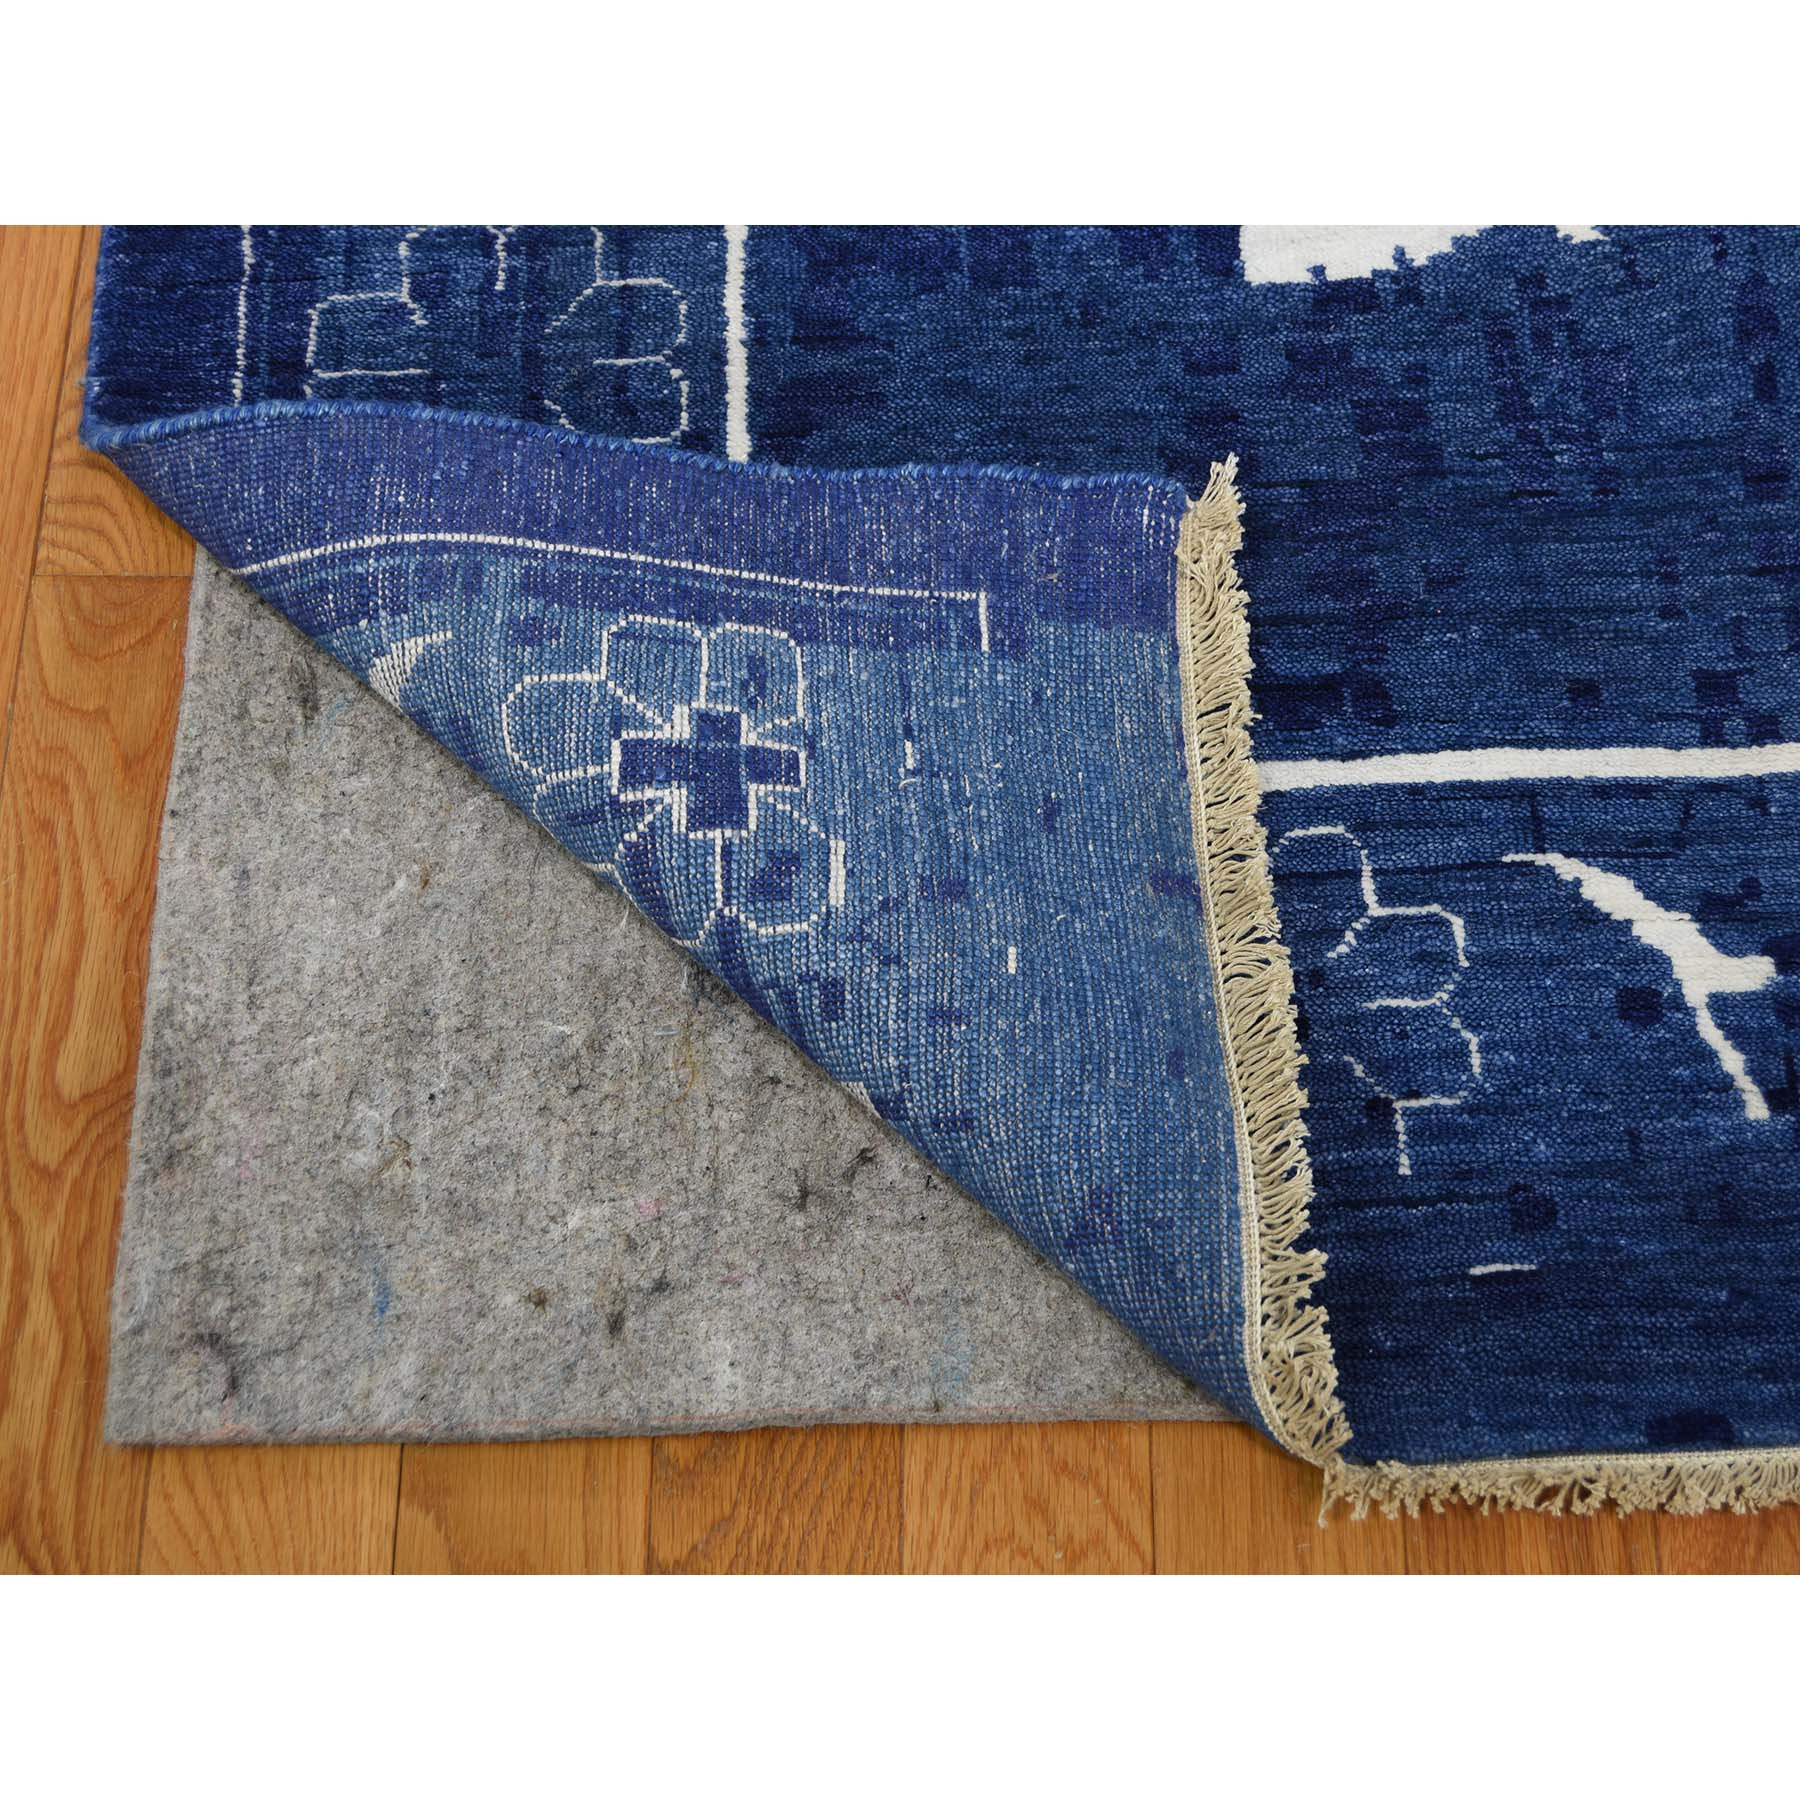 12-1 x18-2  Oversized Hand-Knotted Wool and Silk Tone on Tone Tabriz Oriental Rug